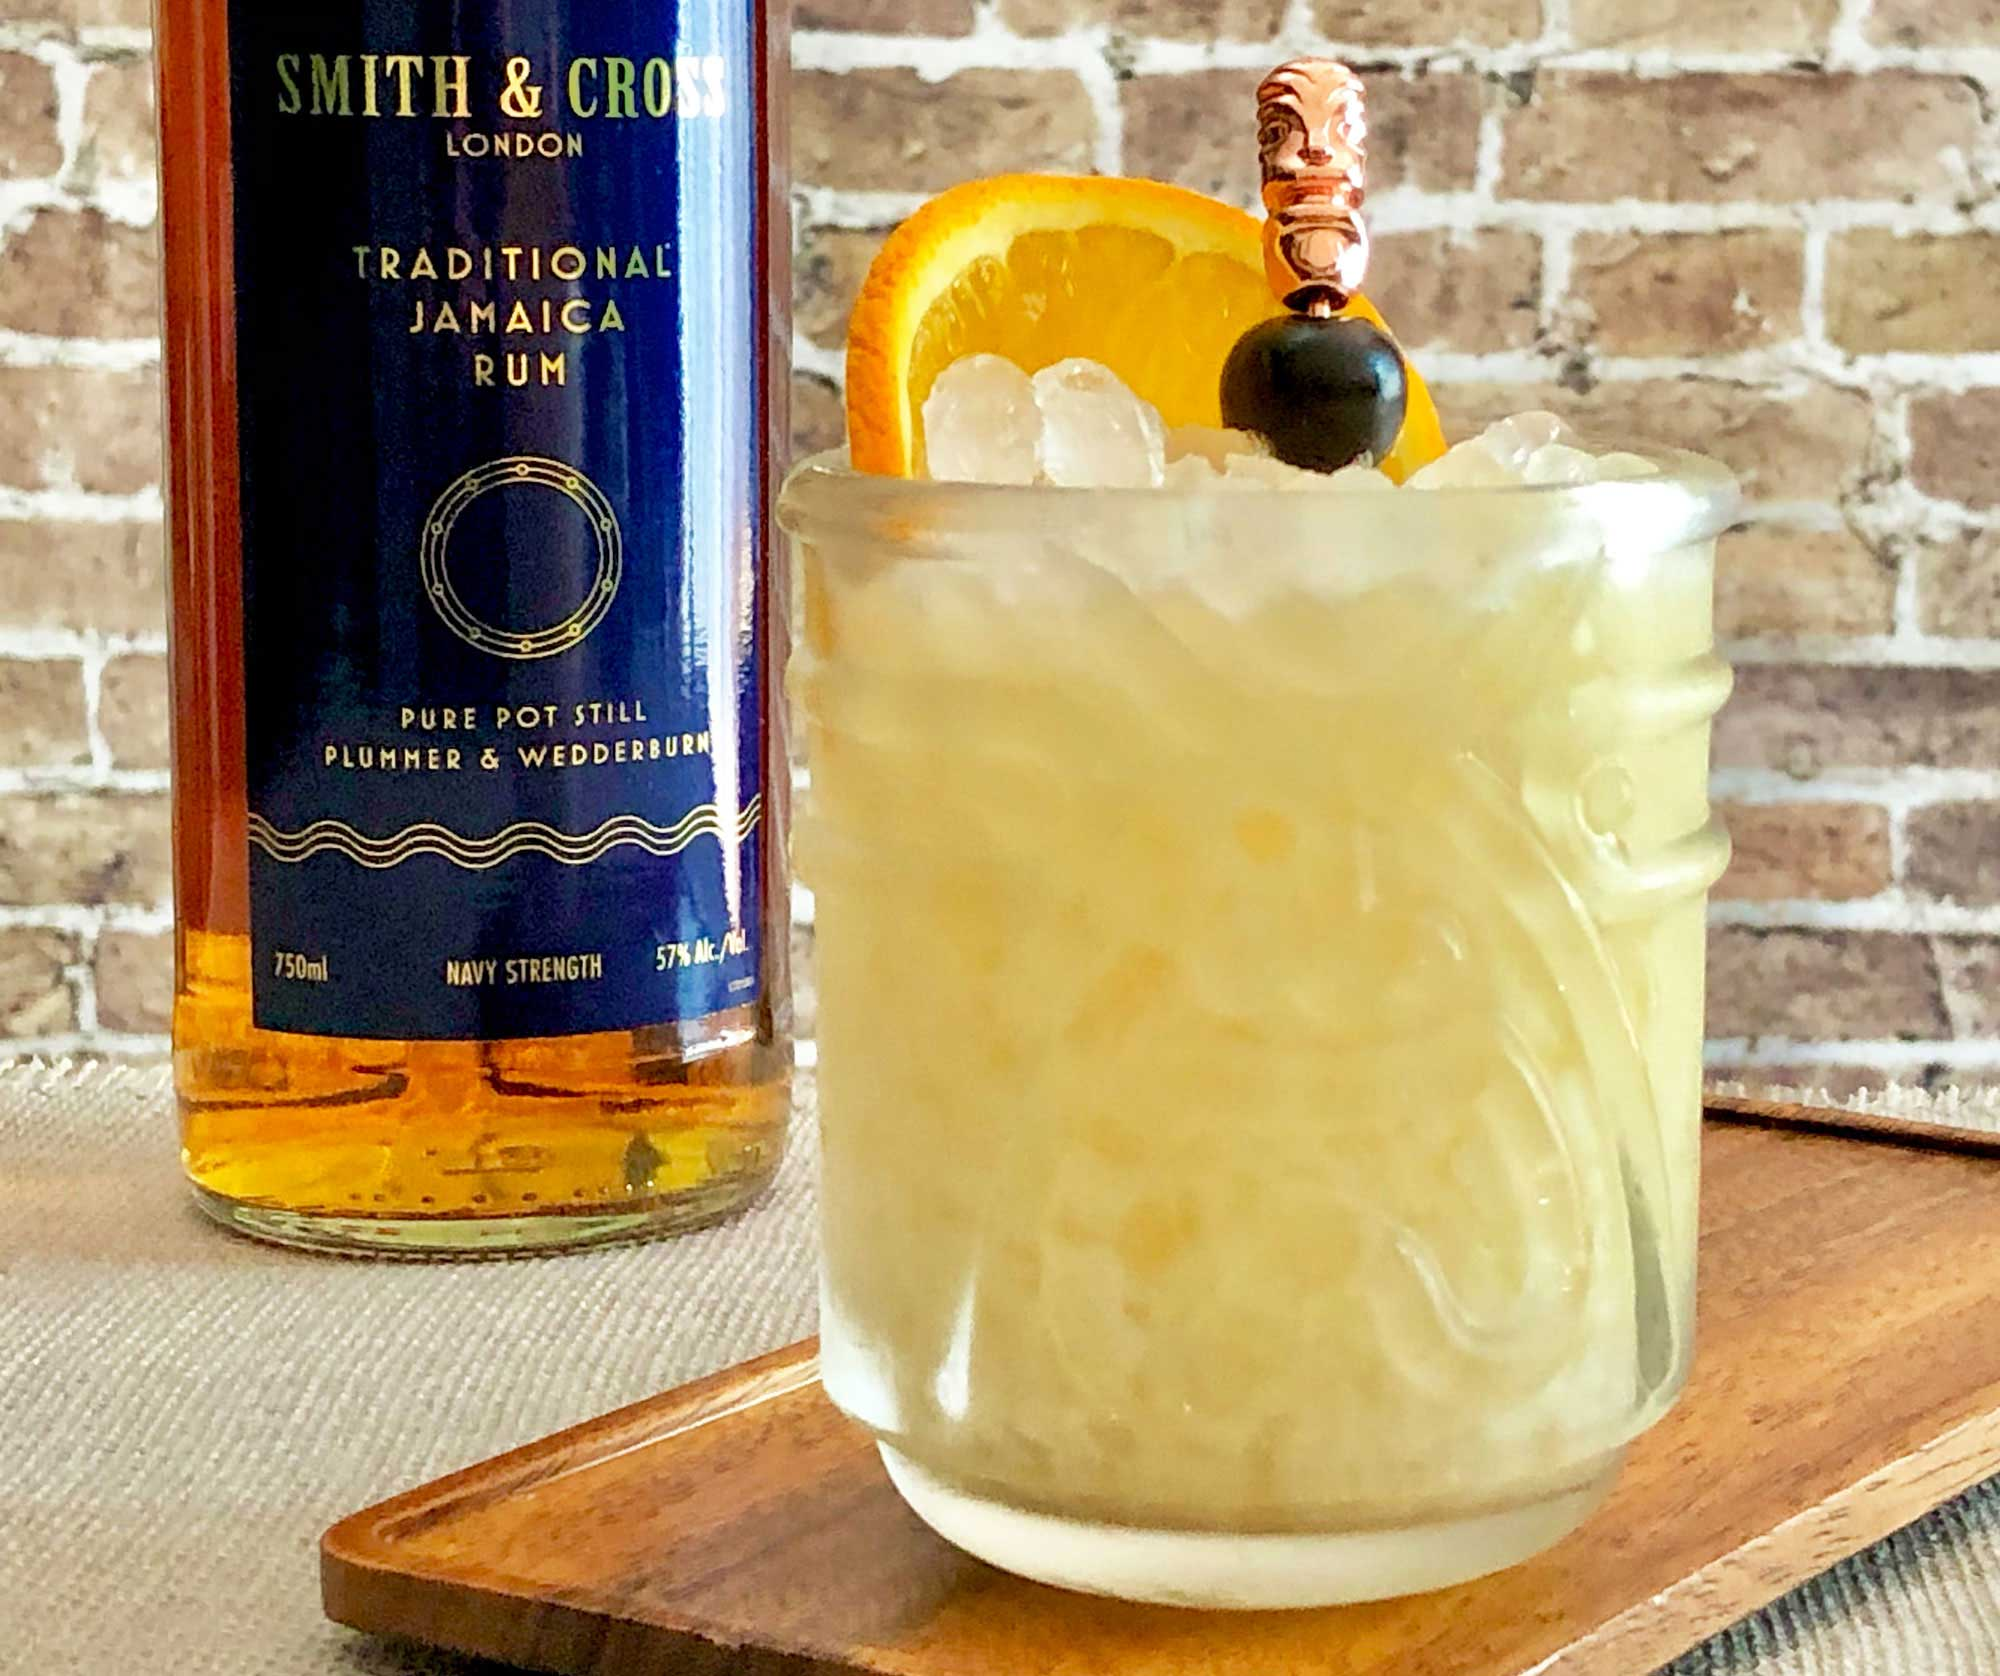 An example of the Punk Killer, the mixed drink (cocktail) featuring Smith & Cross Traditional Jamaica Rum, pineapple juice, orange juice, and coconut cream; photo by Lee Edwards